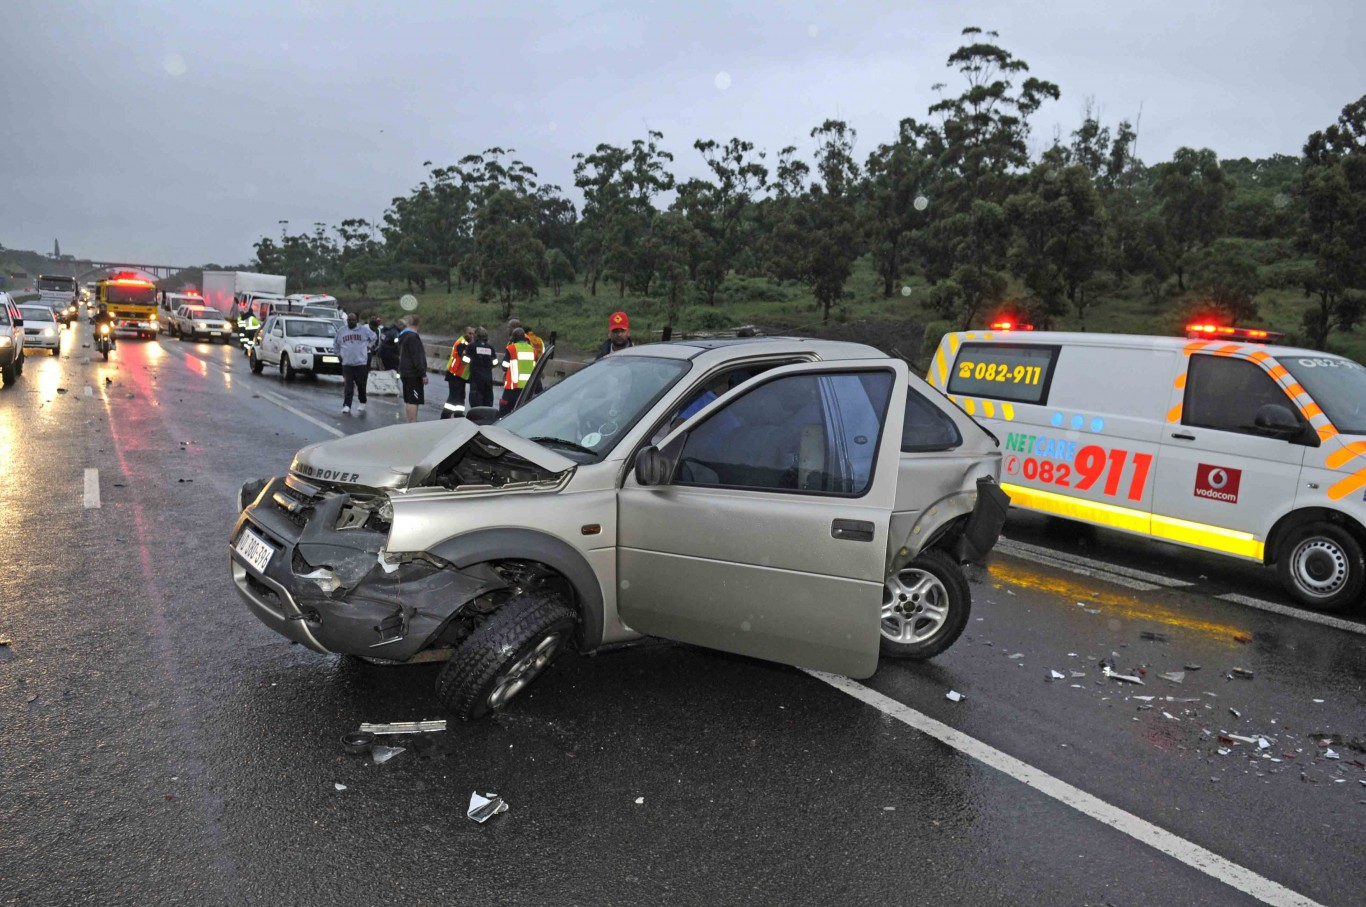 South Car Accident On August